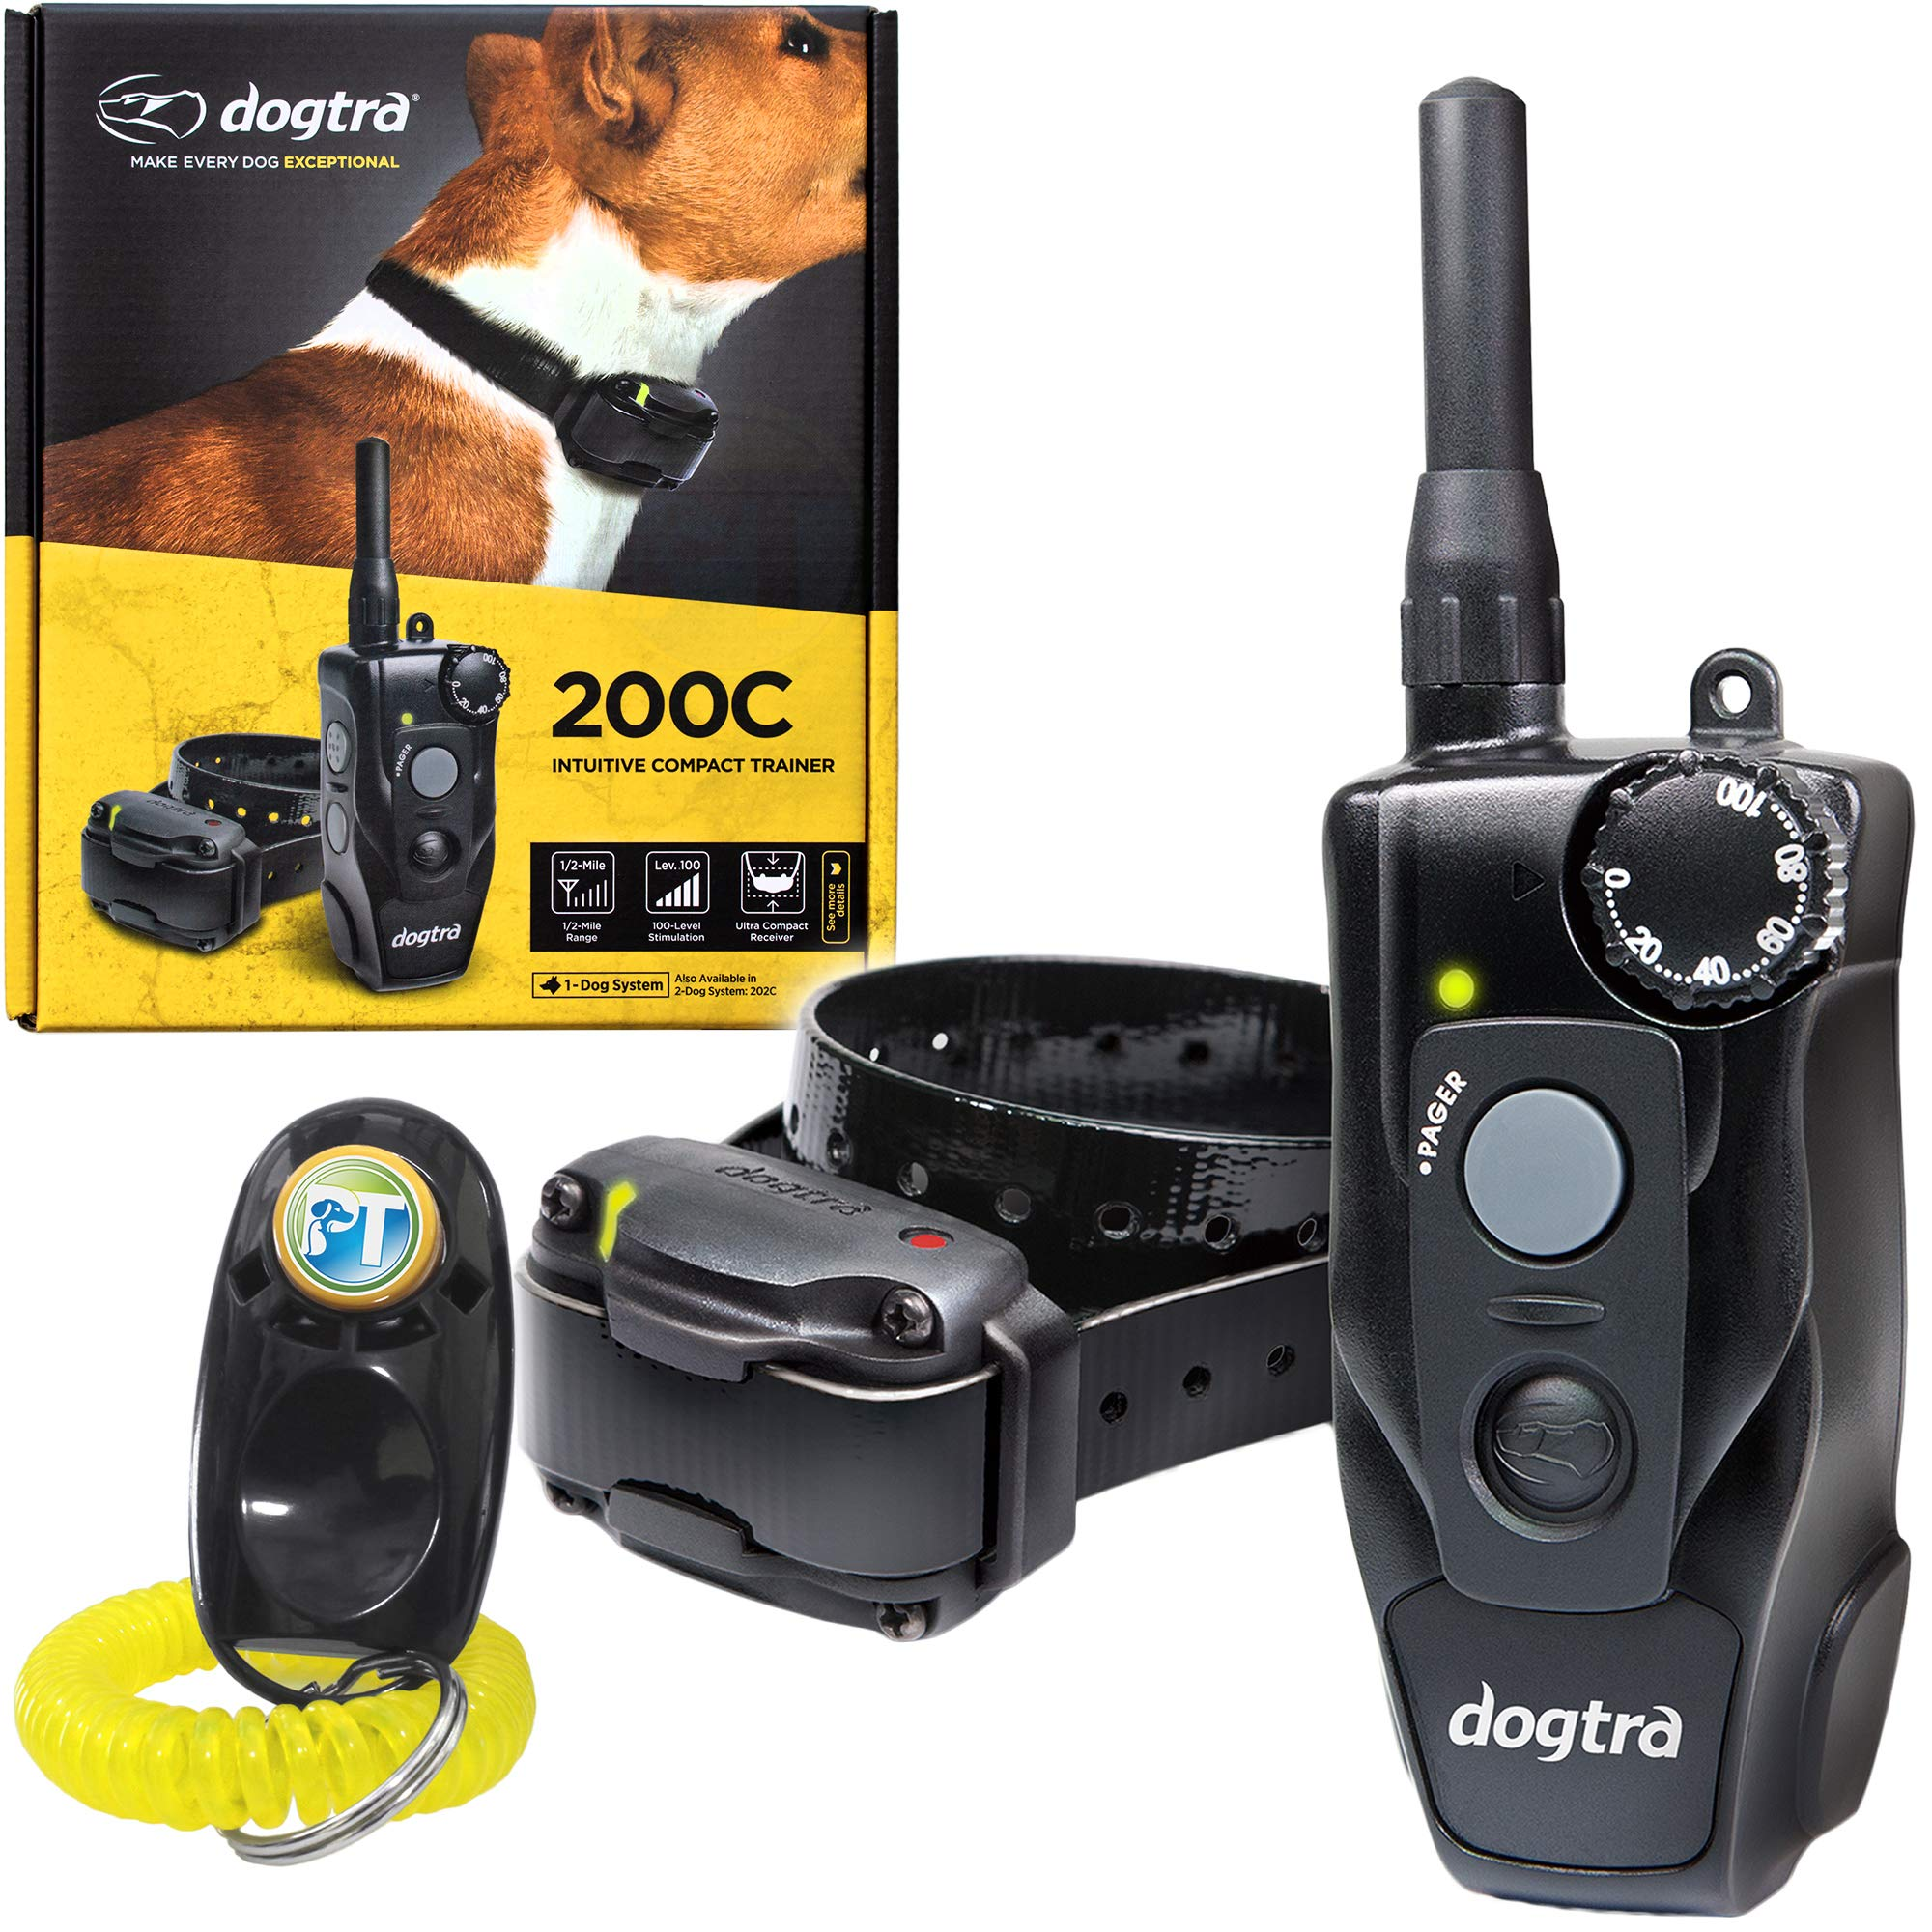 Dogtra 200C Remote Training Collar - 1/2 Mile Range, Waterproof, Rechargeable, Shock, Vibration - Includes PetsTEK Dog Training Clicker by Dogtra